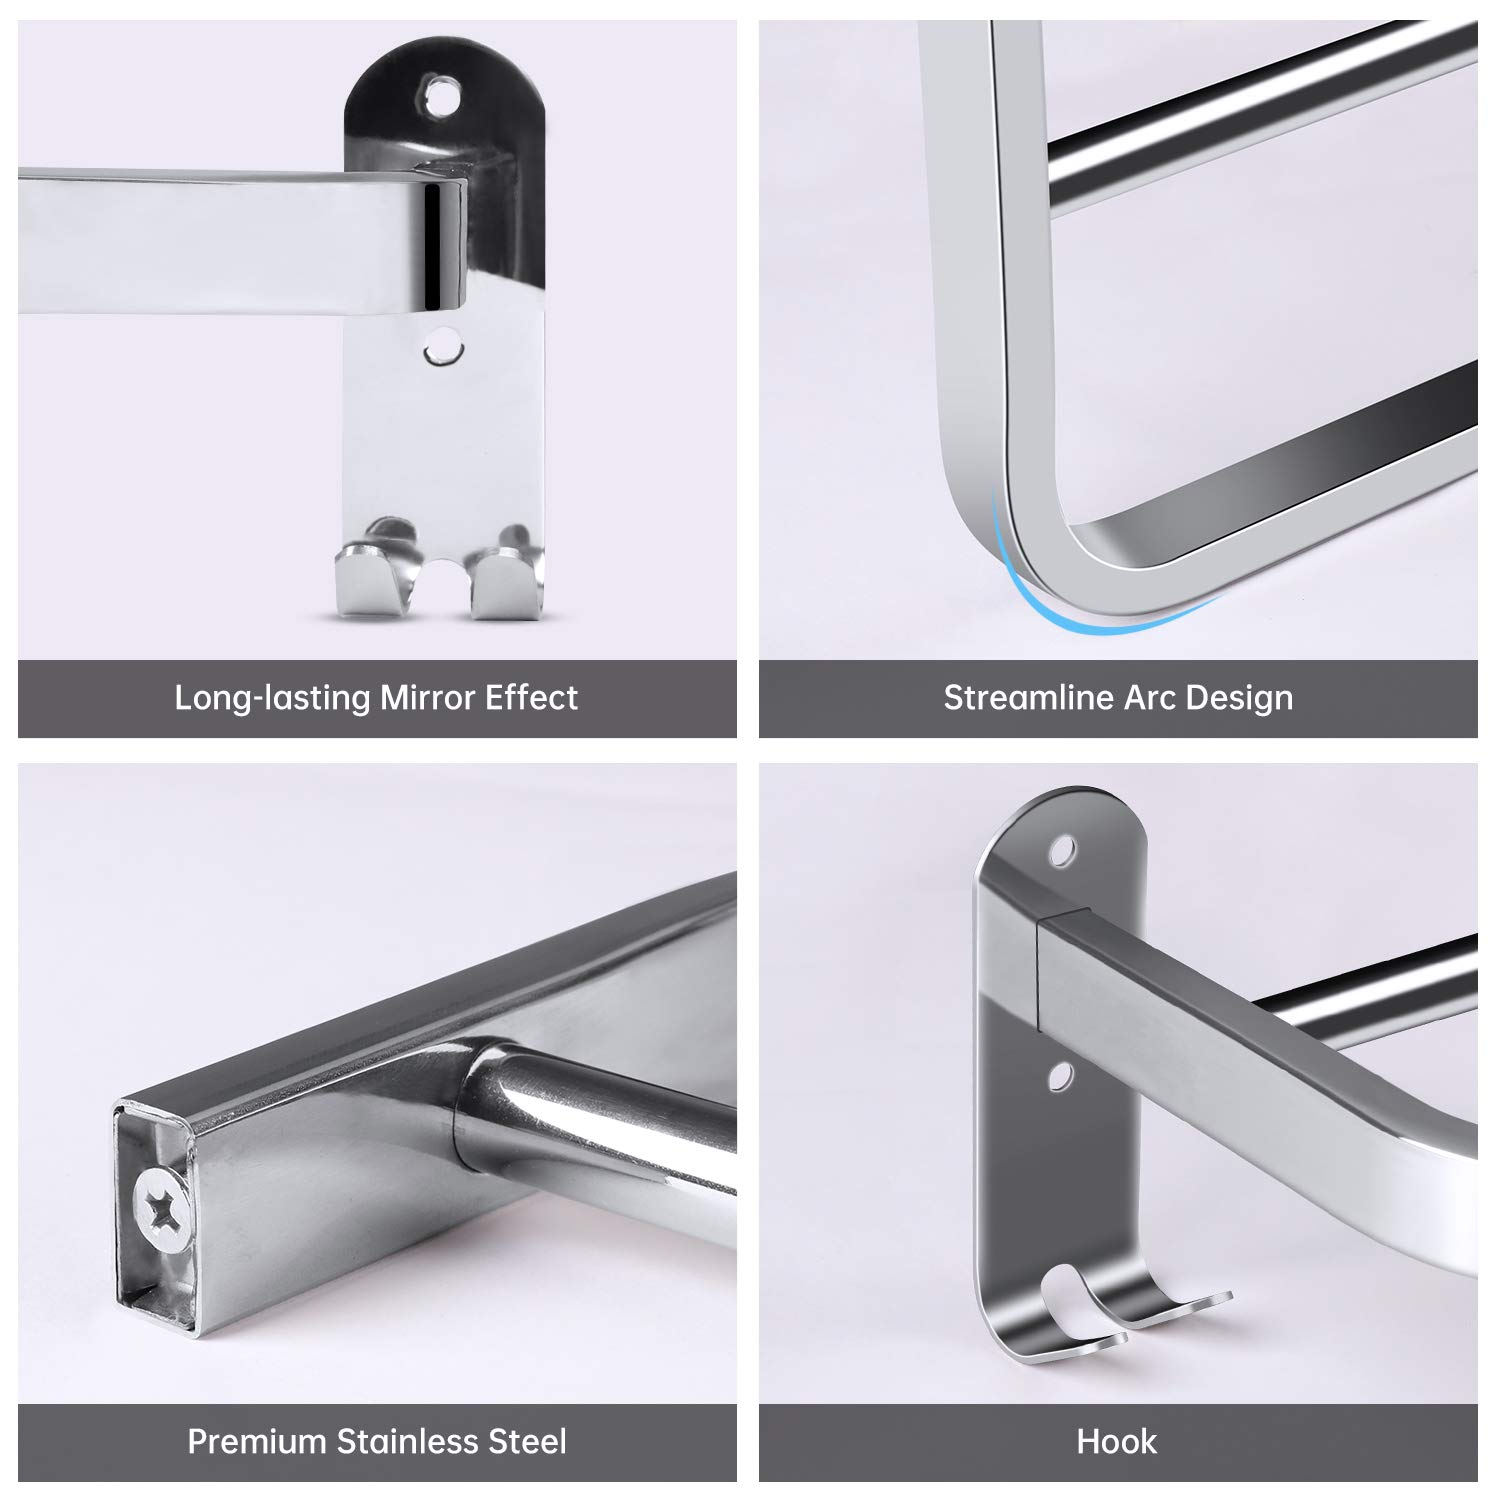 21-Inch Towel Bar with Hooks, 22LBS Max Self Adhesive or Wall Mounted Double Anti-Rust Stainless Steel Towel Rack Holder, Bathroom Kitchen Hardware Accessory